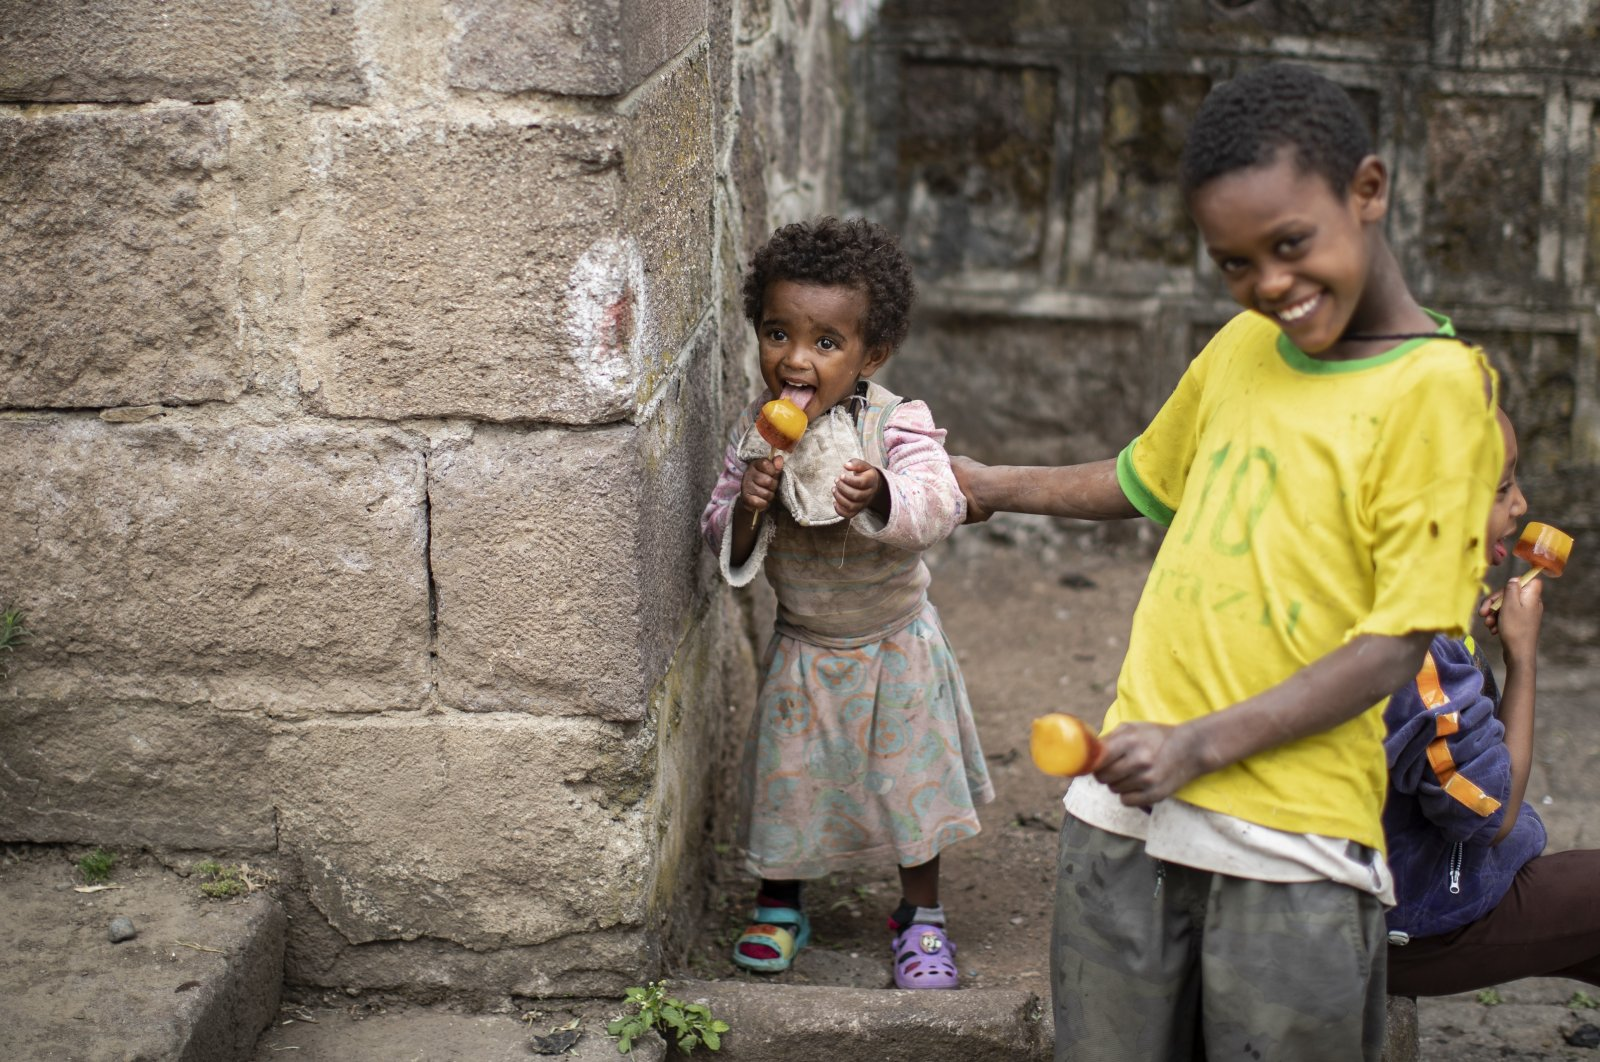 Children play and eat ice pops on a street in Gondar, in the Amhara region of northern Ethiopia, on May 1, 2021. (AP Photo)